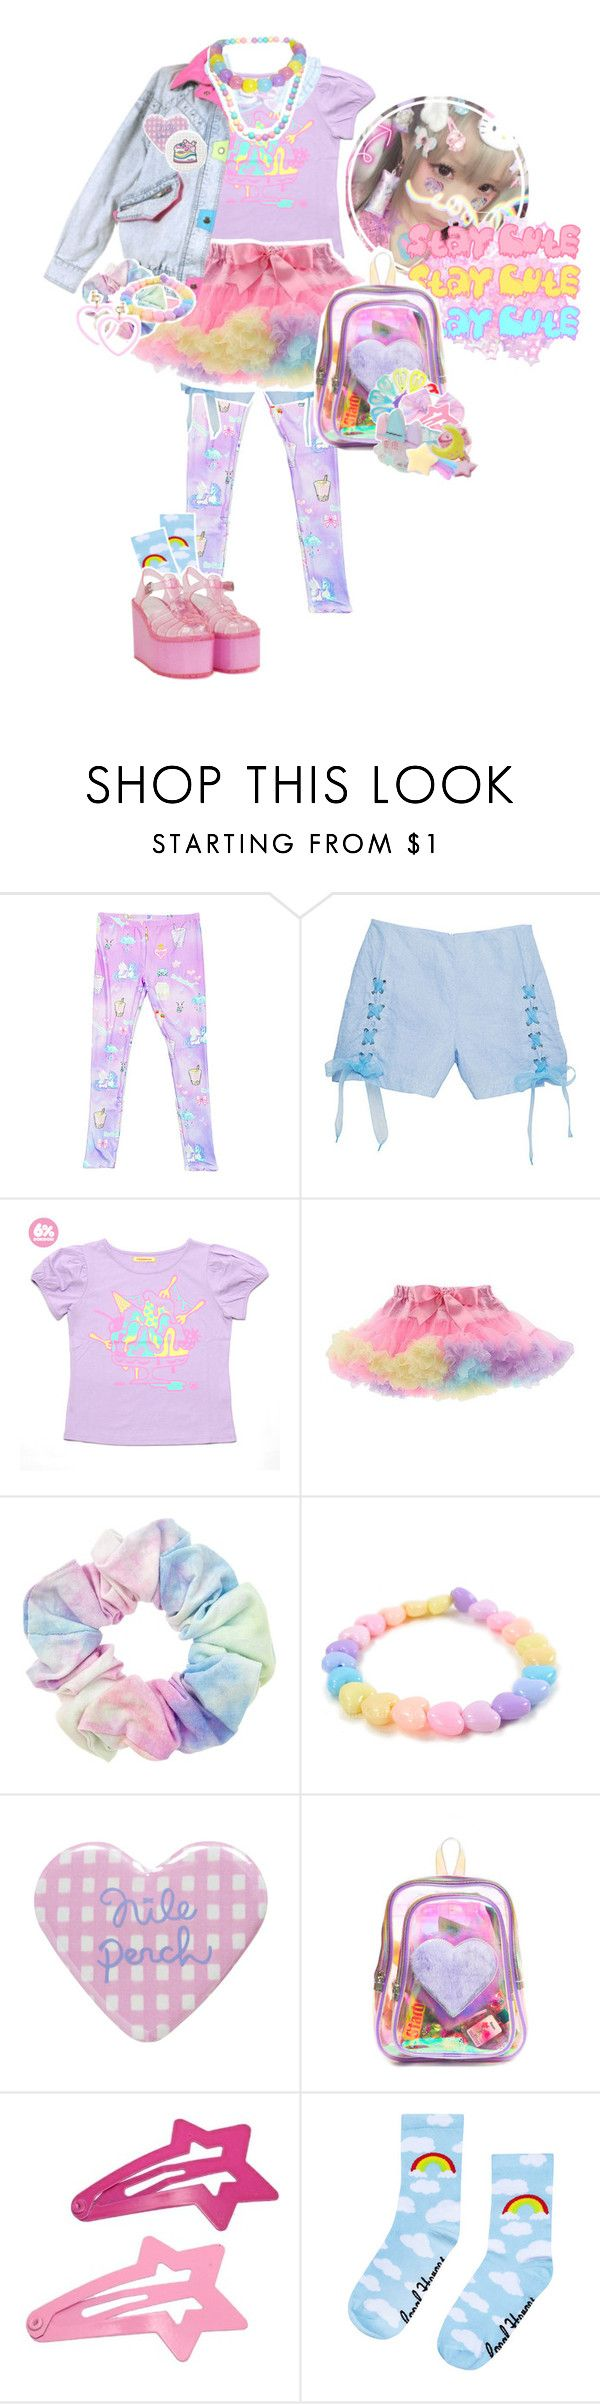 """ pop kei kid "" by gonzaloqroz ❤ liked on Polyvore featuring MHM, Kaiya Eve, UNIF, F, women's clothing, women's fashion, women, female, woman and misses"